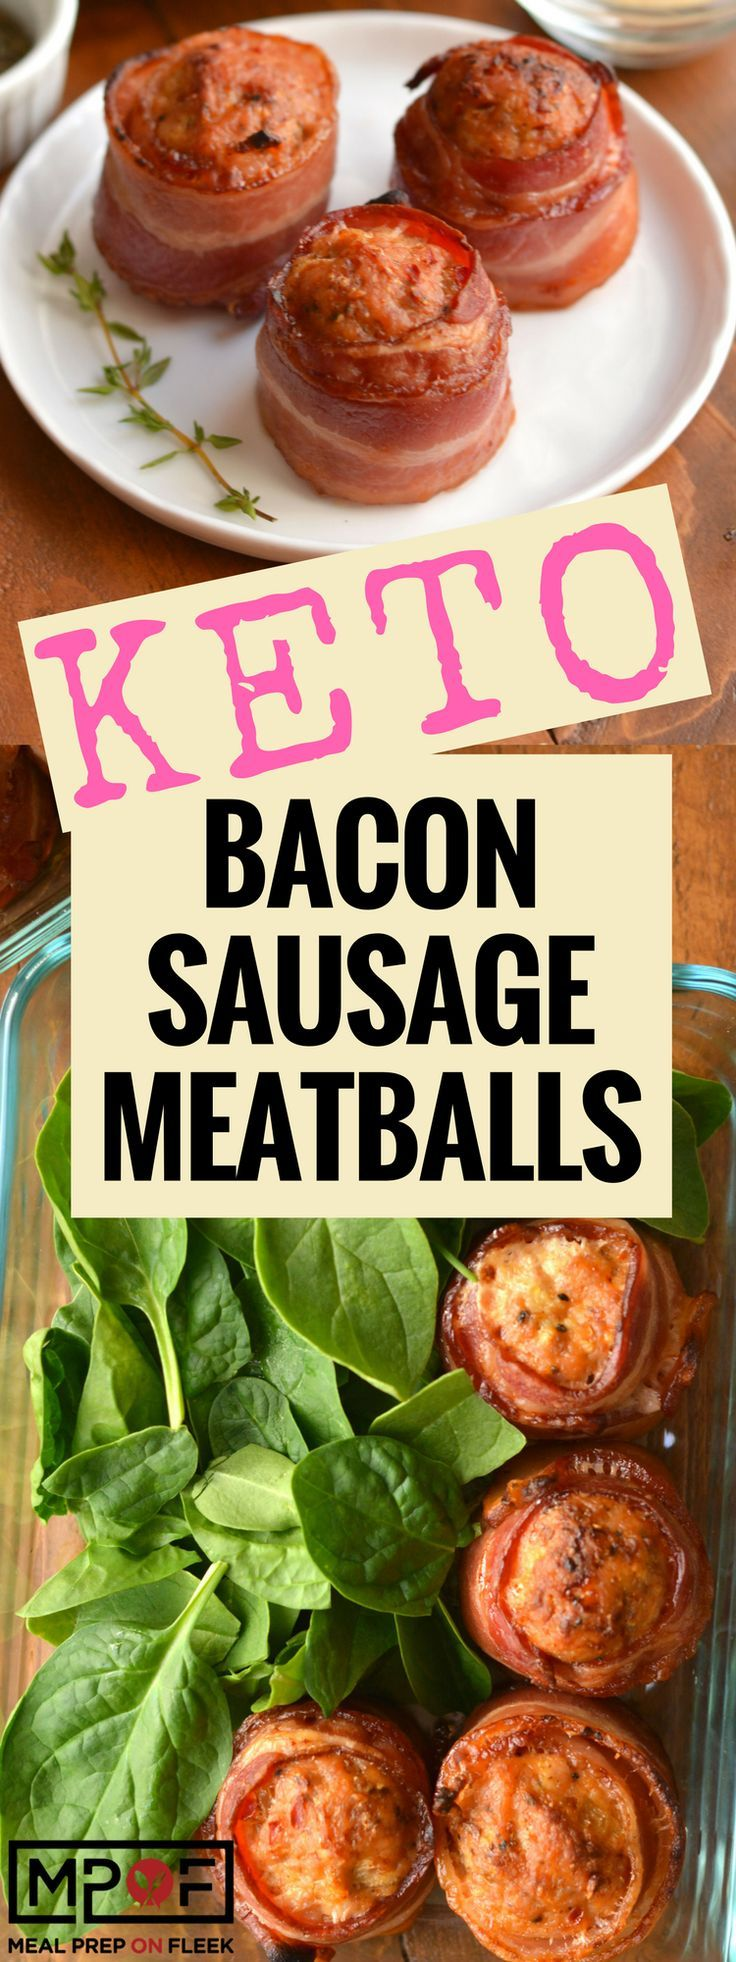 Keto Bacon Sausage Meatballs Recipe - Italian Sausage wrapped in bacon is an easy keto meal prep meal that's packed with protein and flavor. Great for the ketogenic diet as a breakfast, lunch, snack or even dinner! #ketogenic #ketogenicdiet #ketorecipes